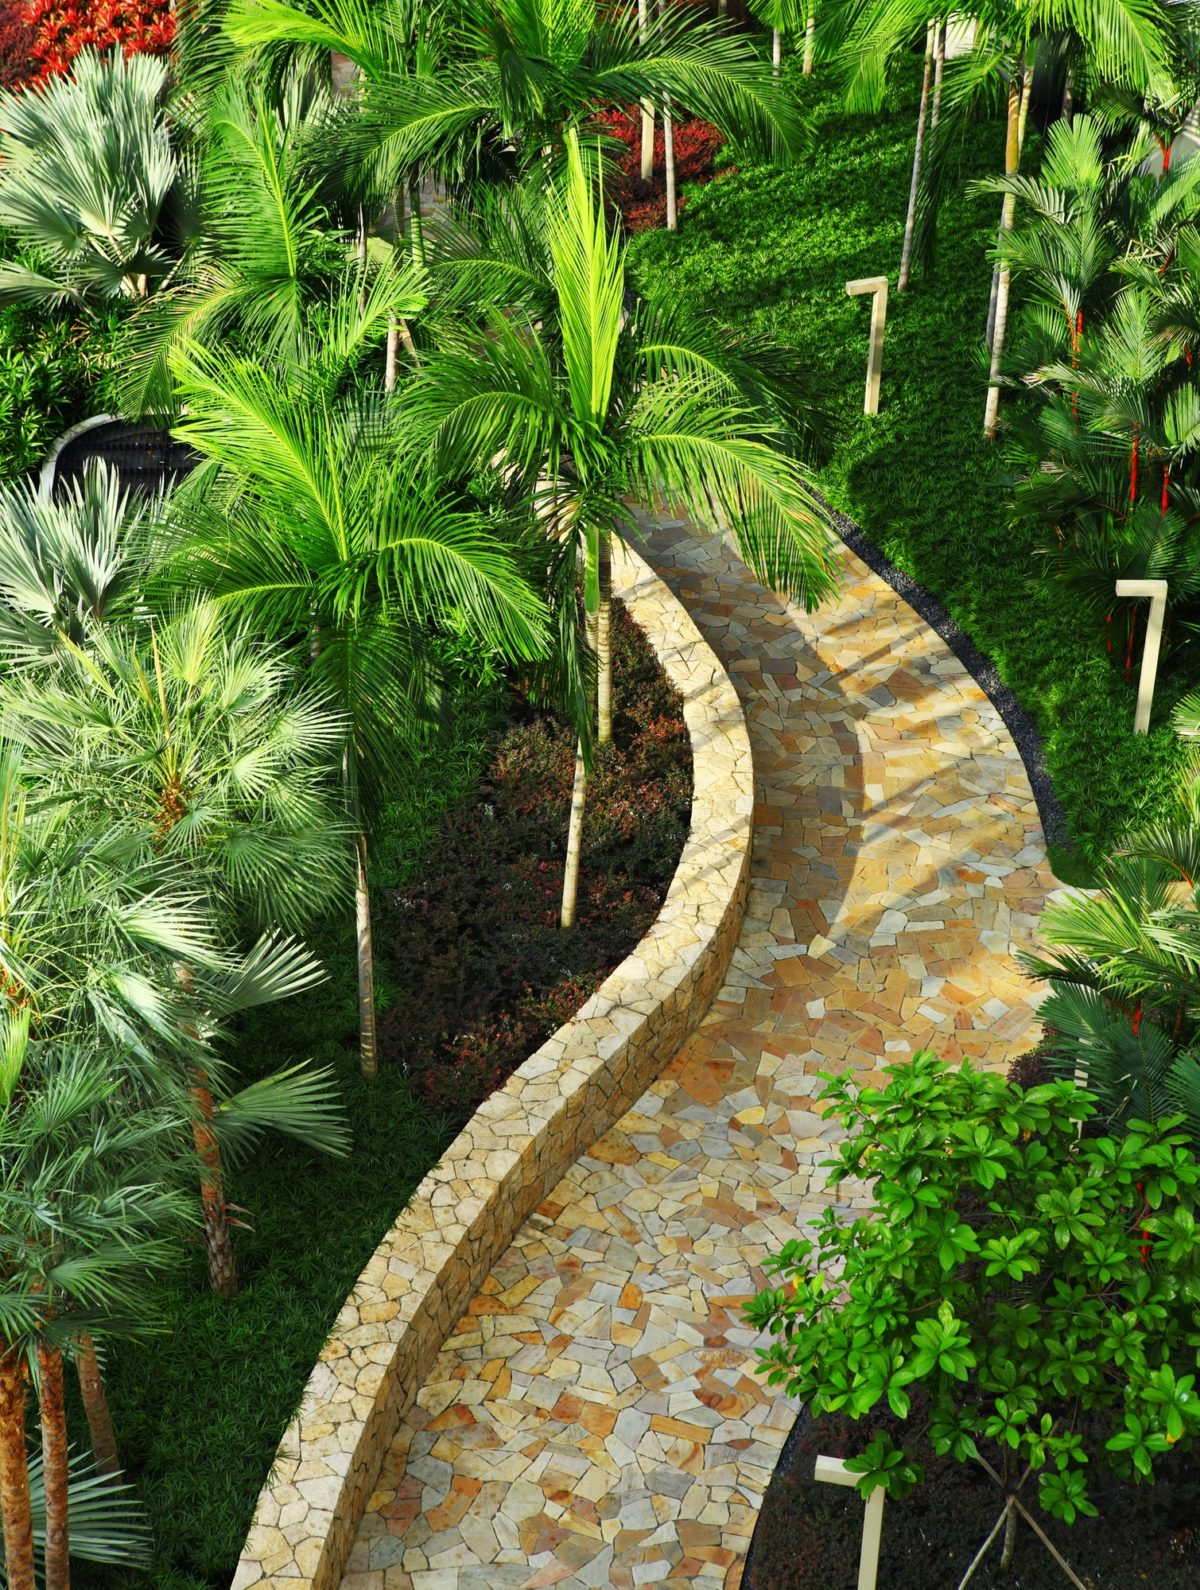 Stone path in green tree garden